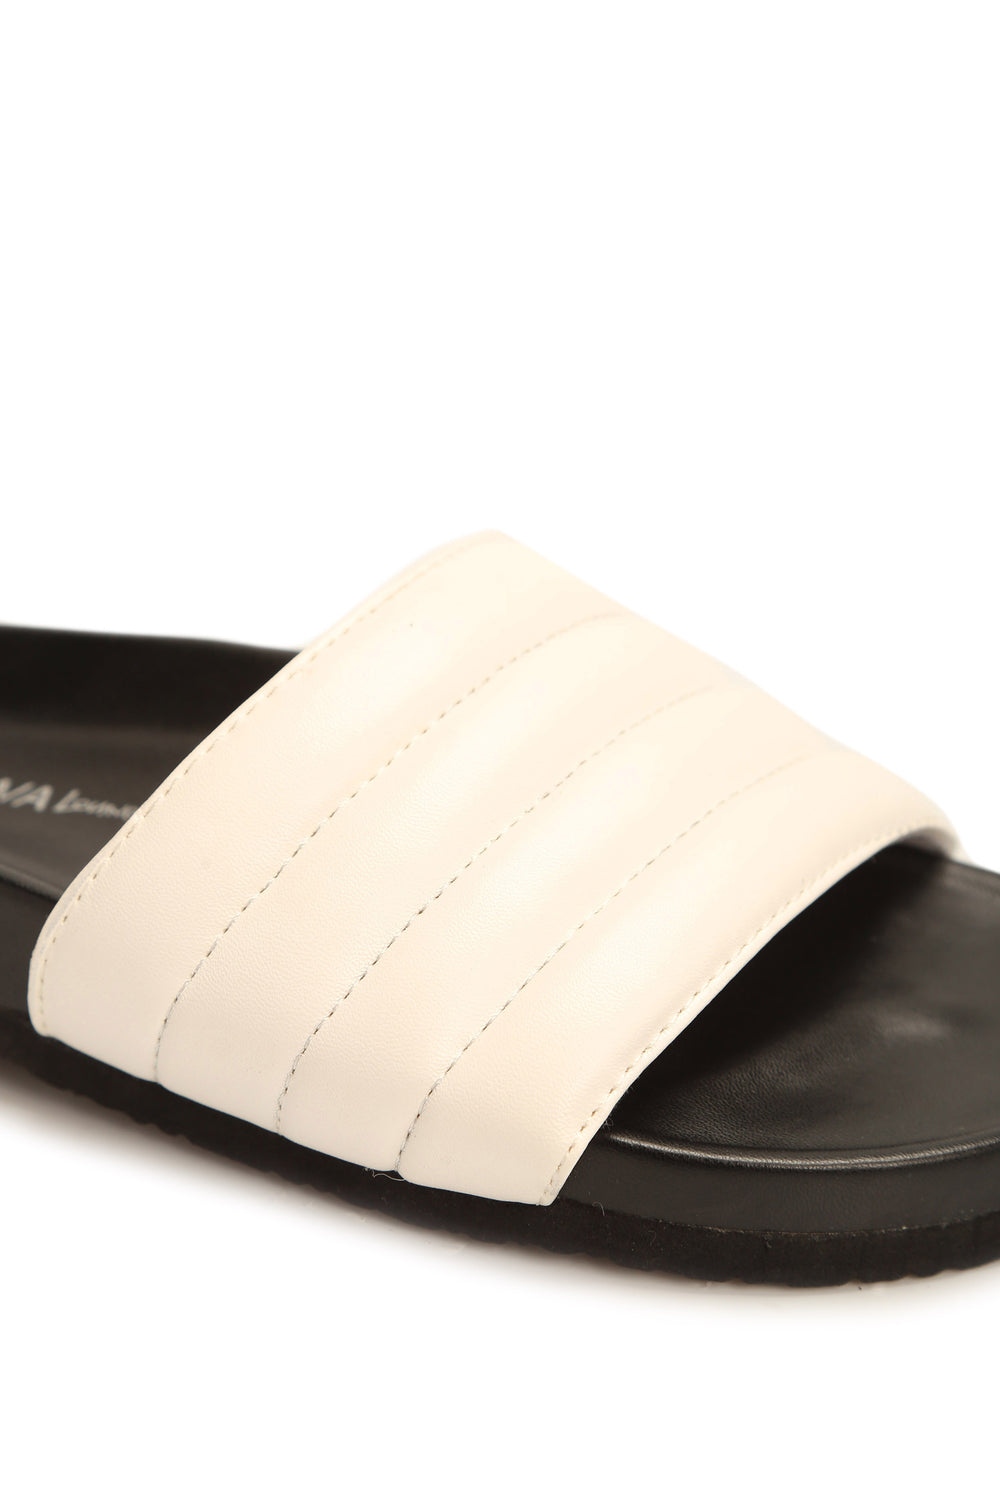 Puffer Than You Think Slides - White